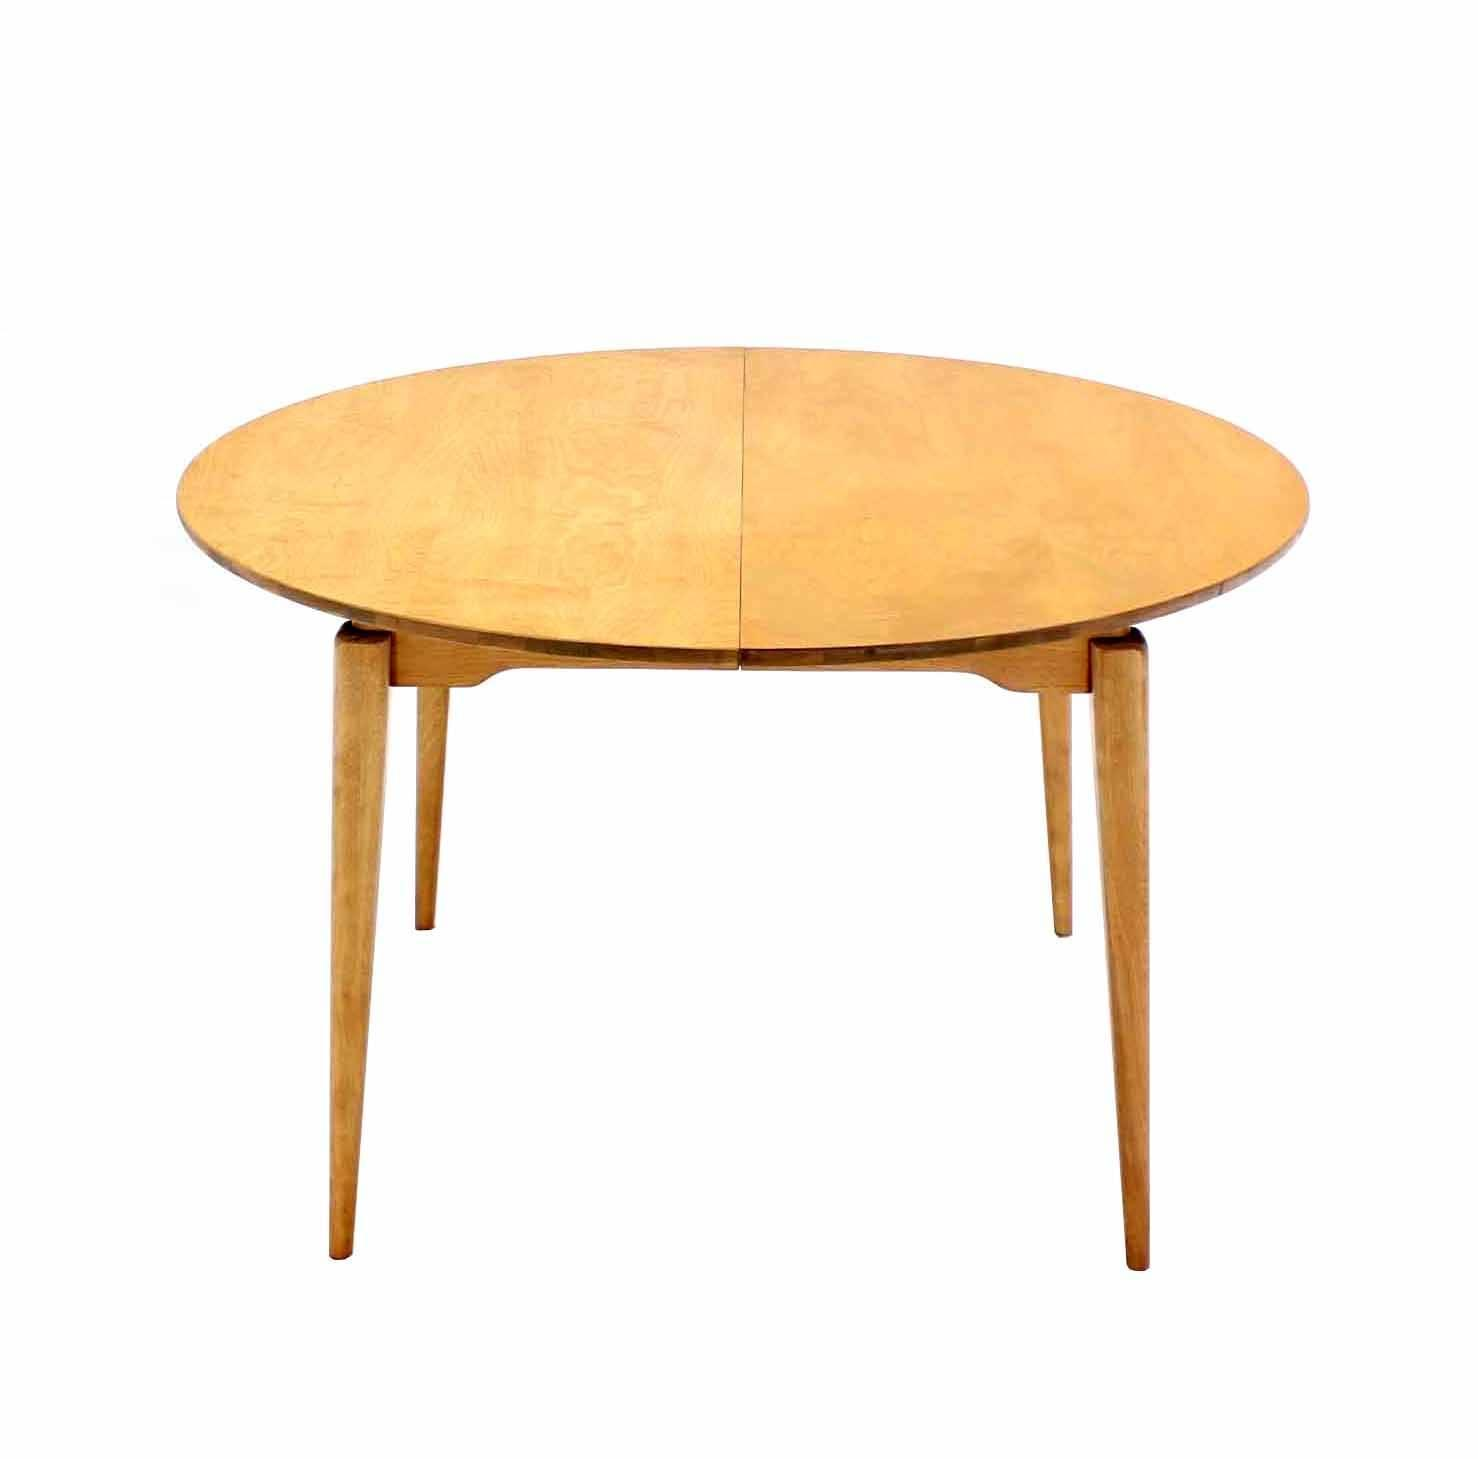 Round birch dining table with three leaves for sale at 1stdibs for Dining table with two leaves